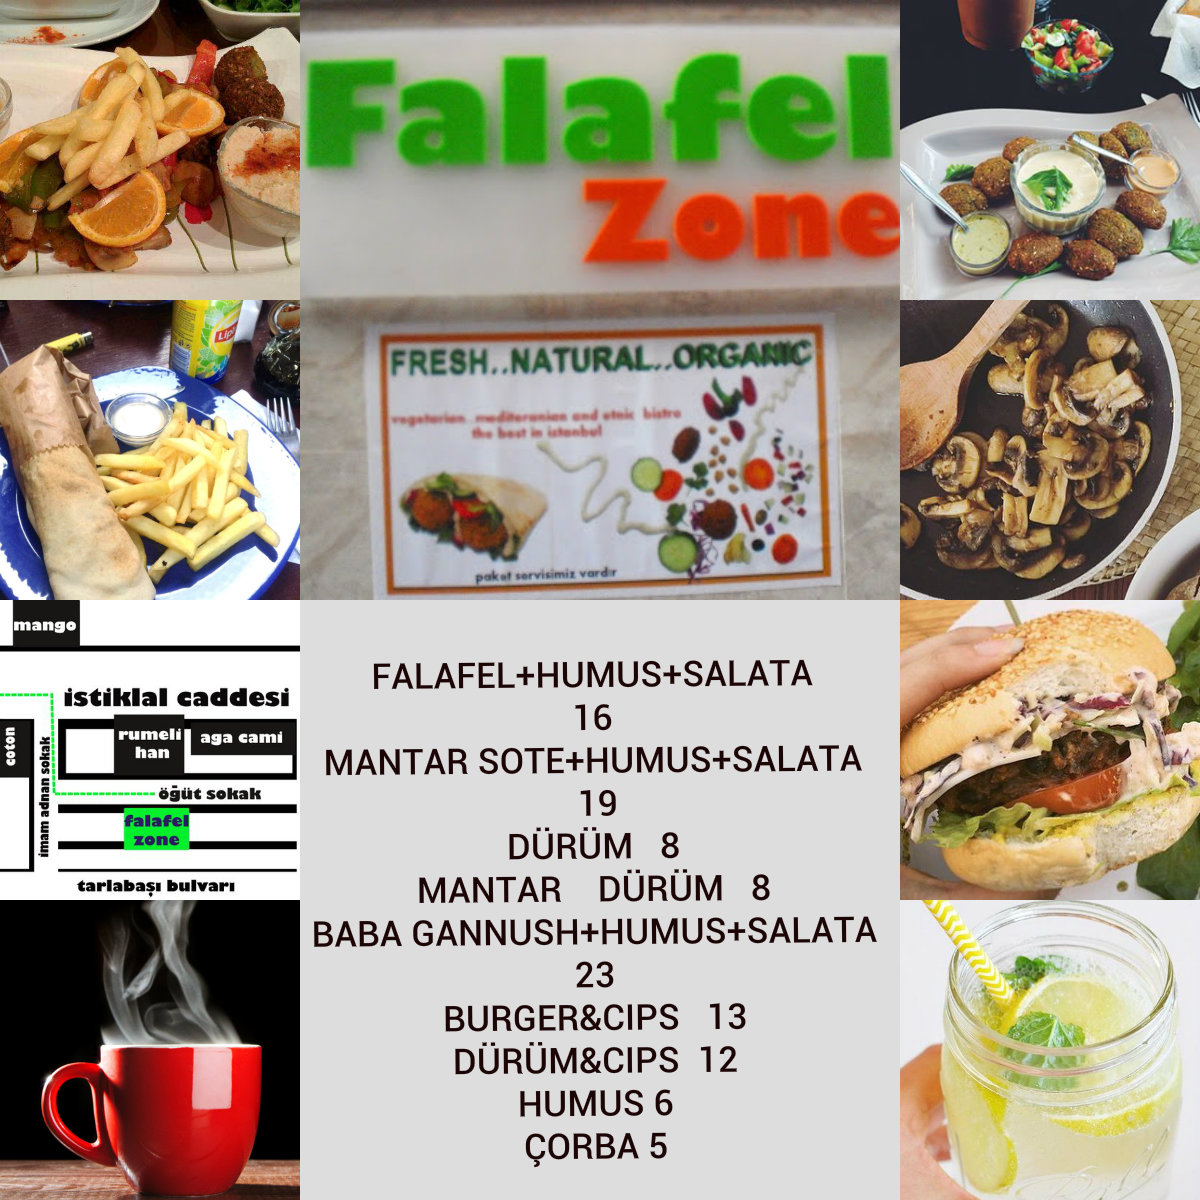 falafelzone...best fresh food in town